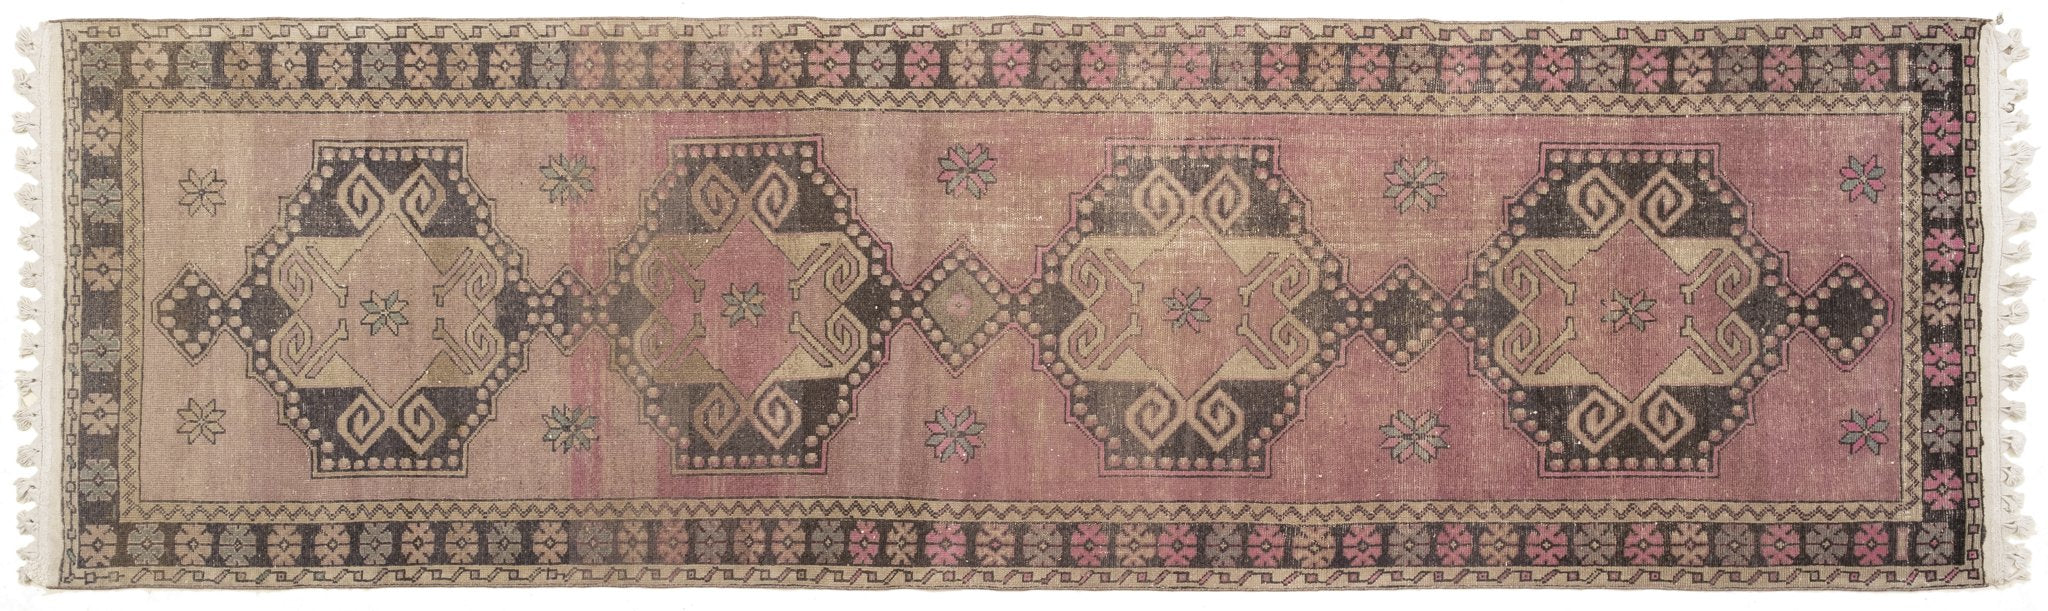 Vintage Turkish Runner Rug Konstantyn